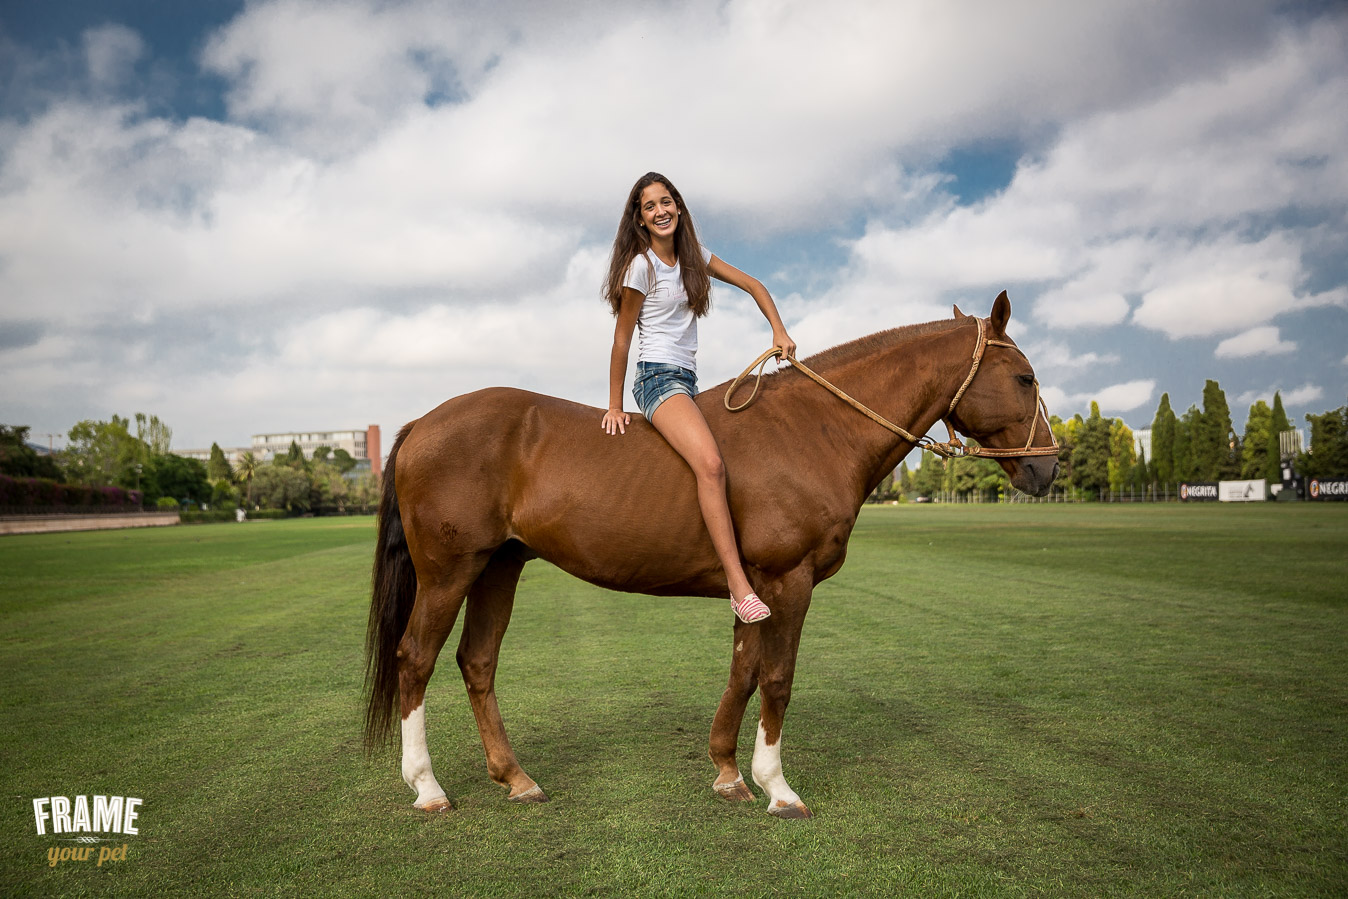 equestrian photographer in spain